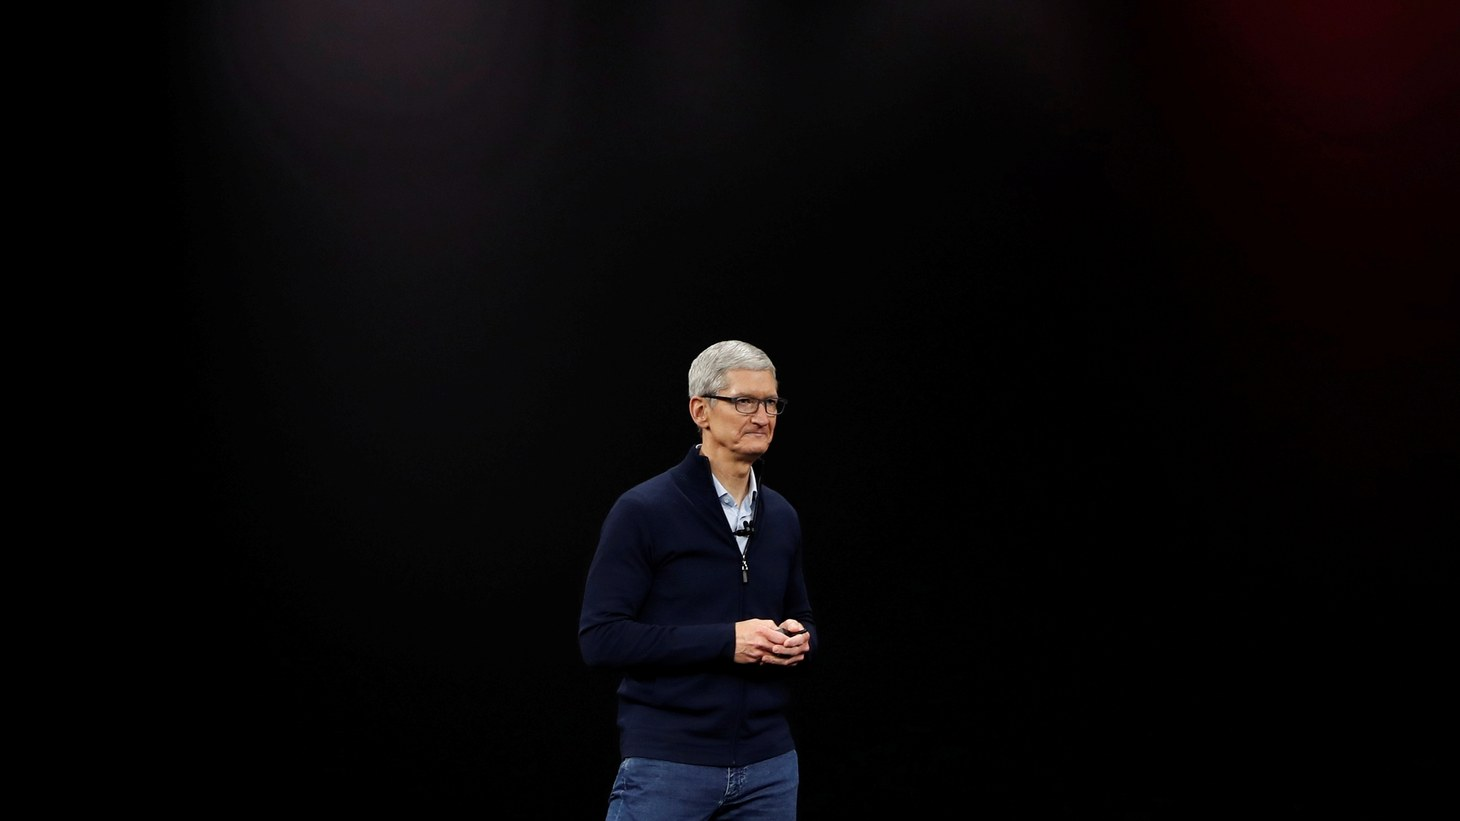 Tim Cook, CEO of Apple, speaks about Apple TV during a launch event in Cupertino, California, U.S. September 12, 2017.